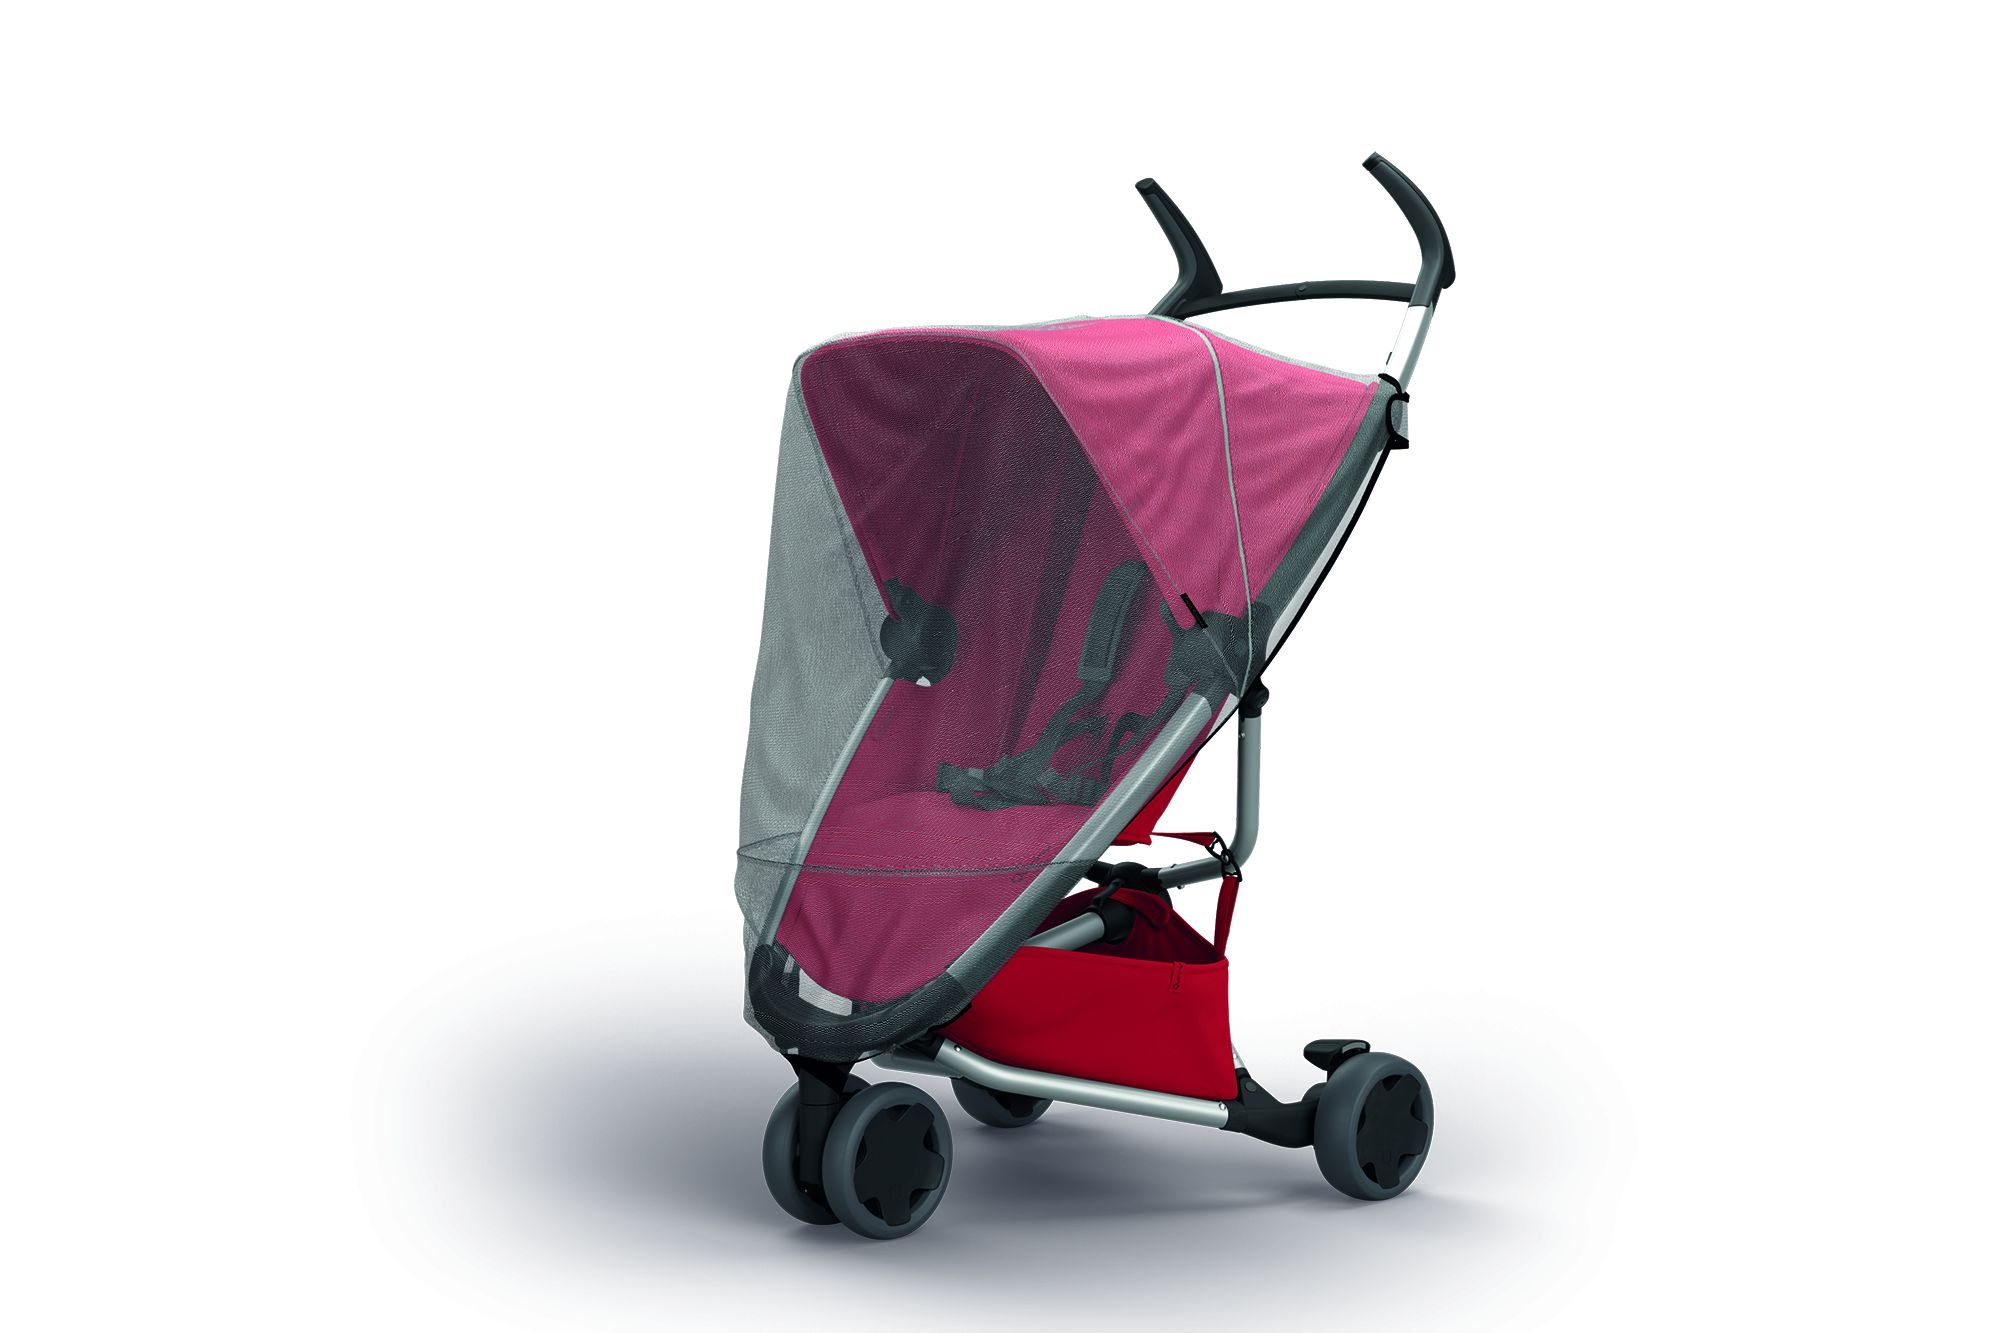 quinny zapp mosquito net for zapp xpress buy at kidsroom strollers stroller accessories. Black Bedroom Furniture Sets. Home Design Ideas